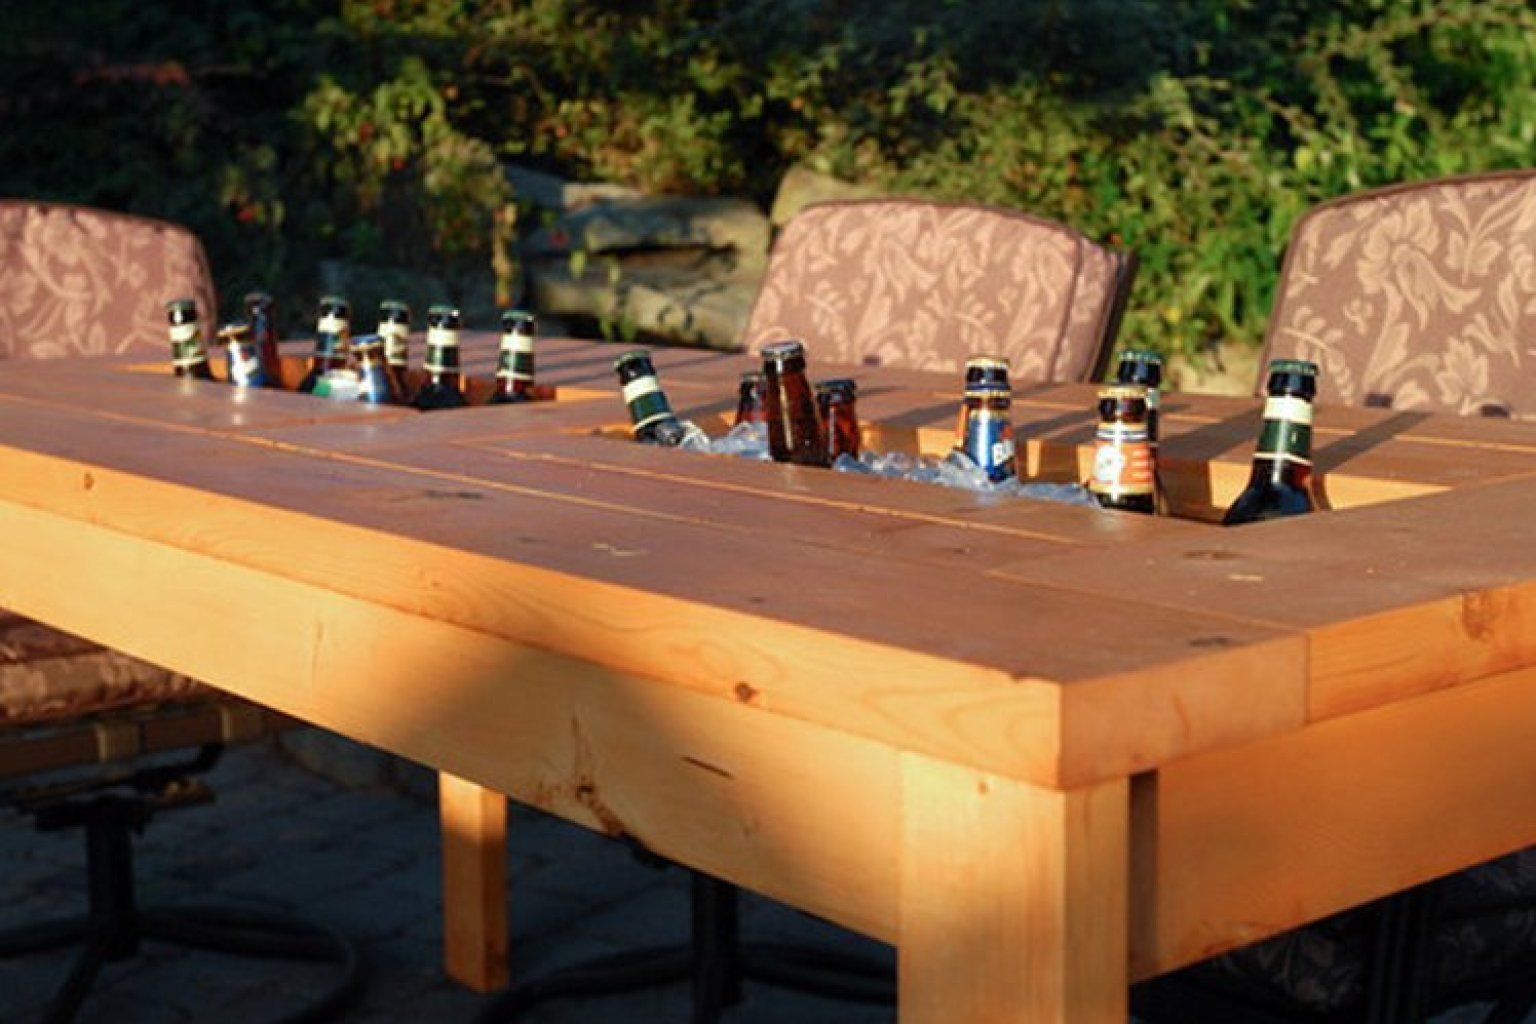 After see the picnic table picture from Medlock Ames' tasting room with the built in wine cooler we decided to incorporate this into our new patio table design.